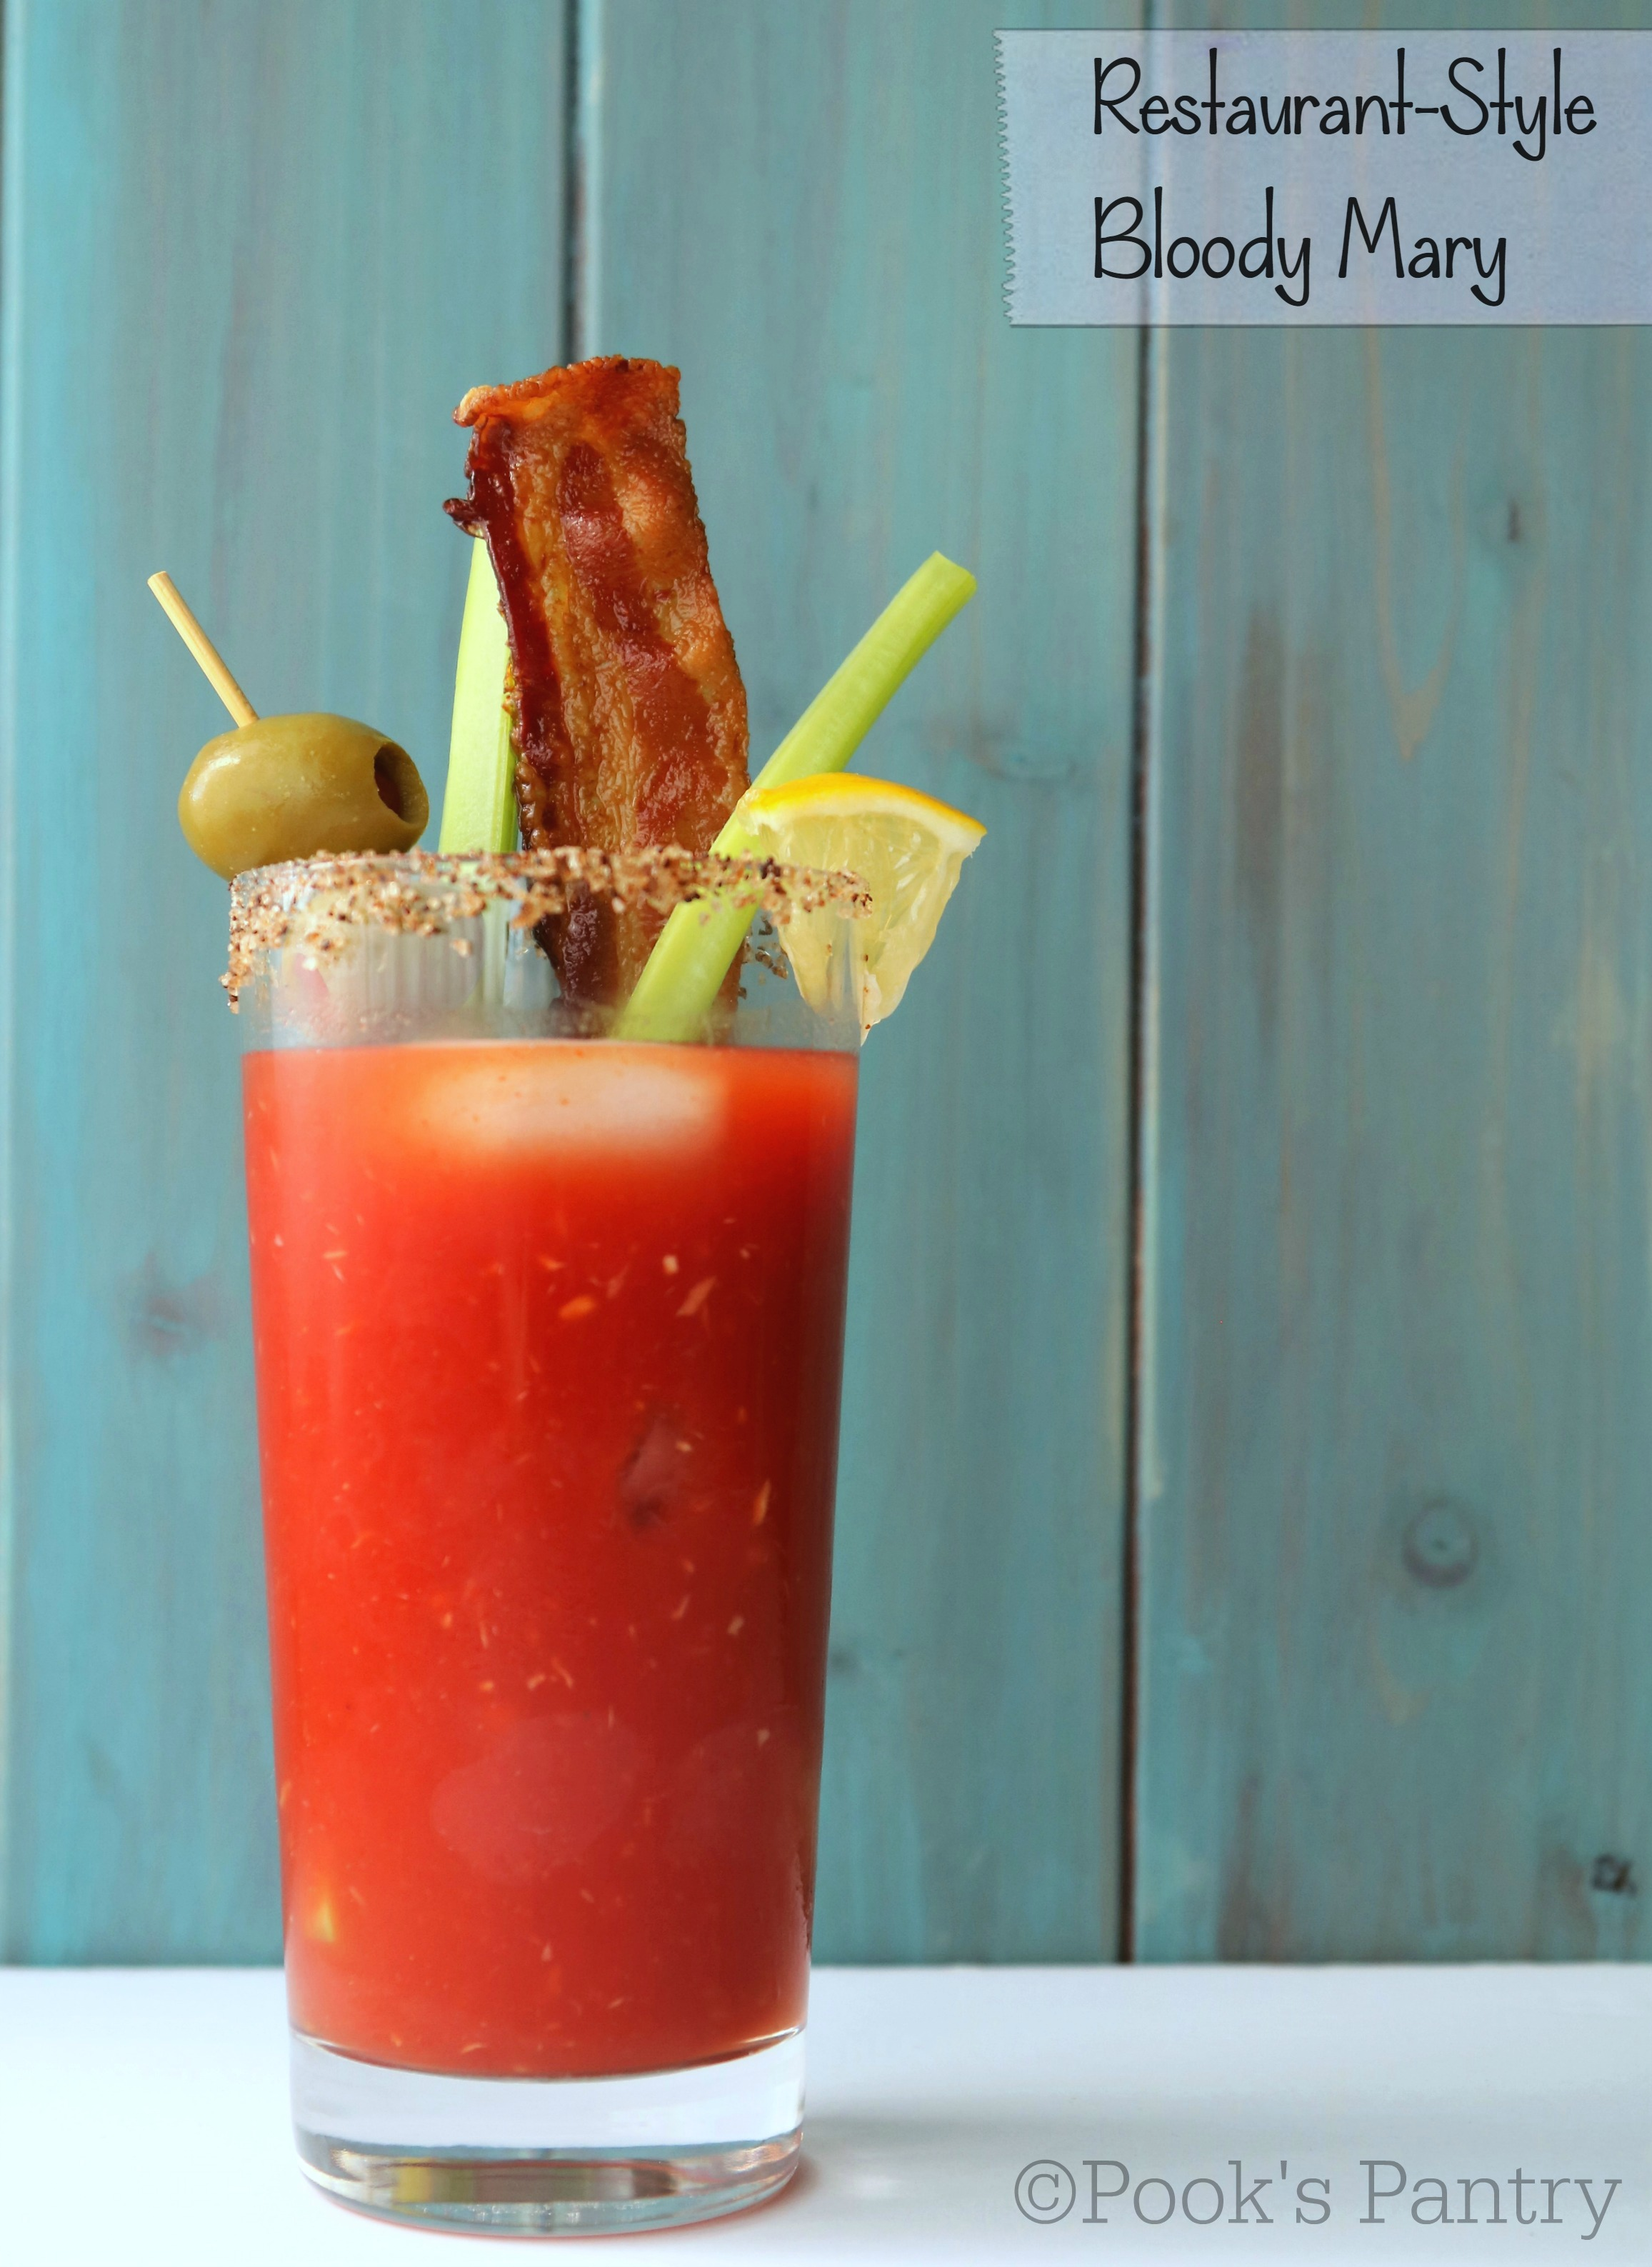 Restaurant Style Bloody Mary with blue background